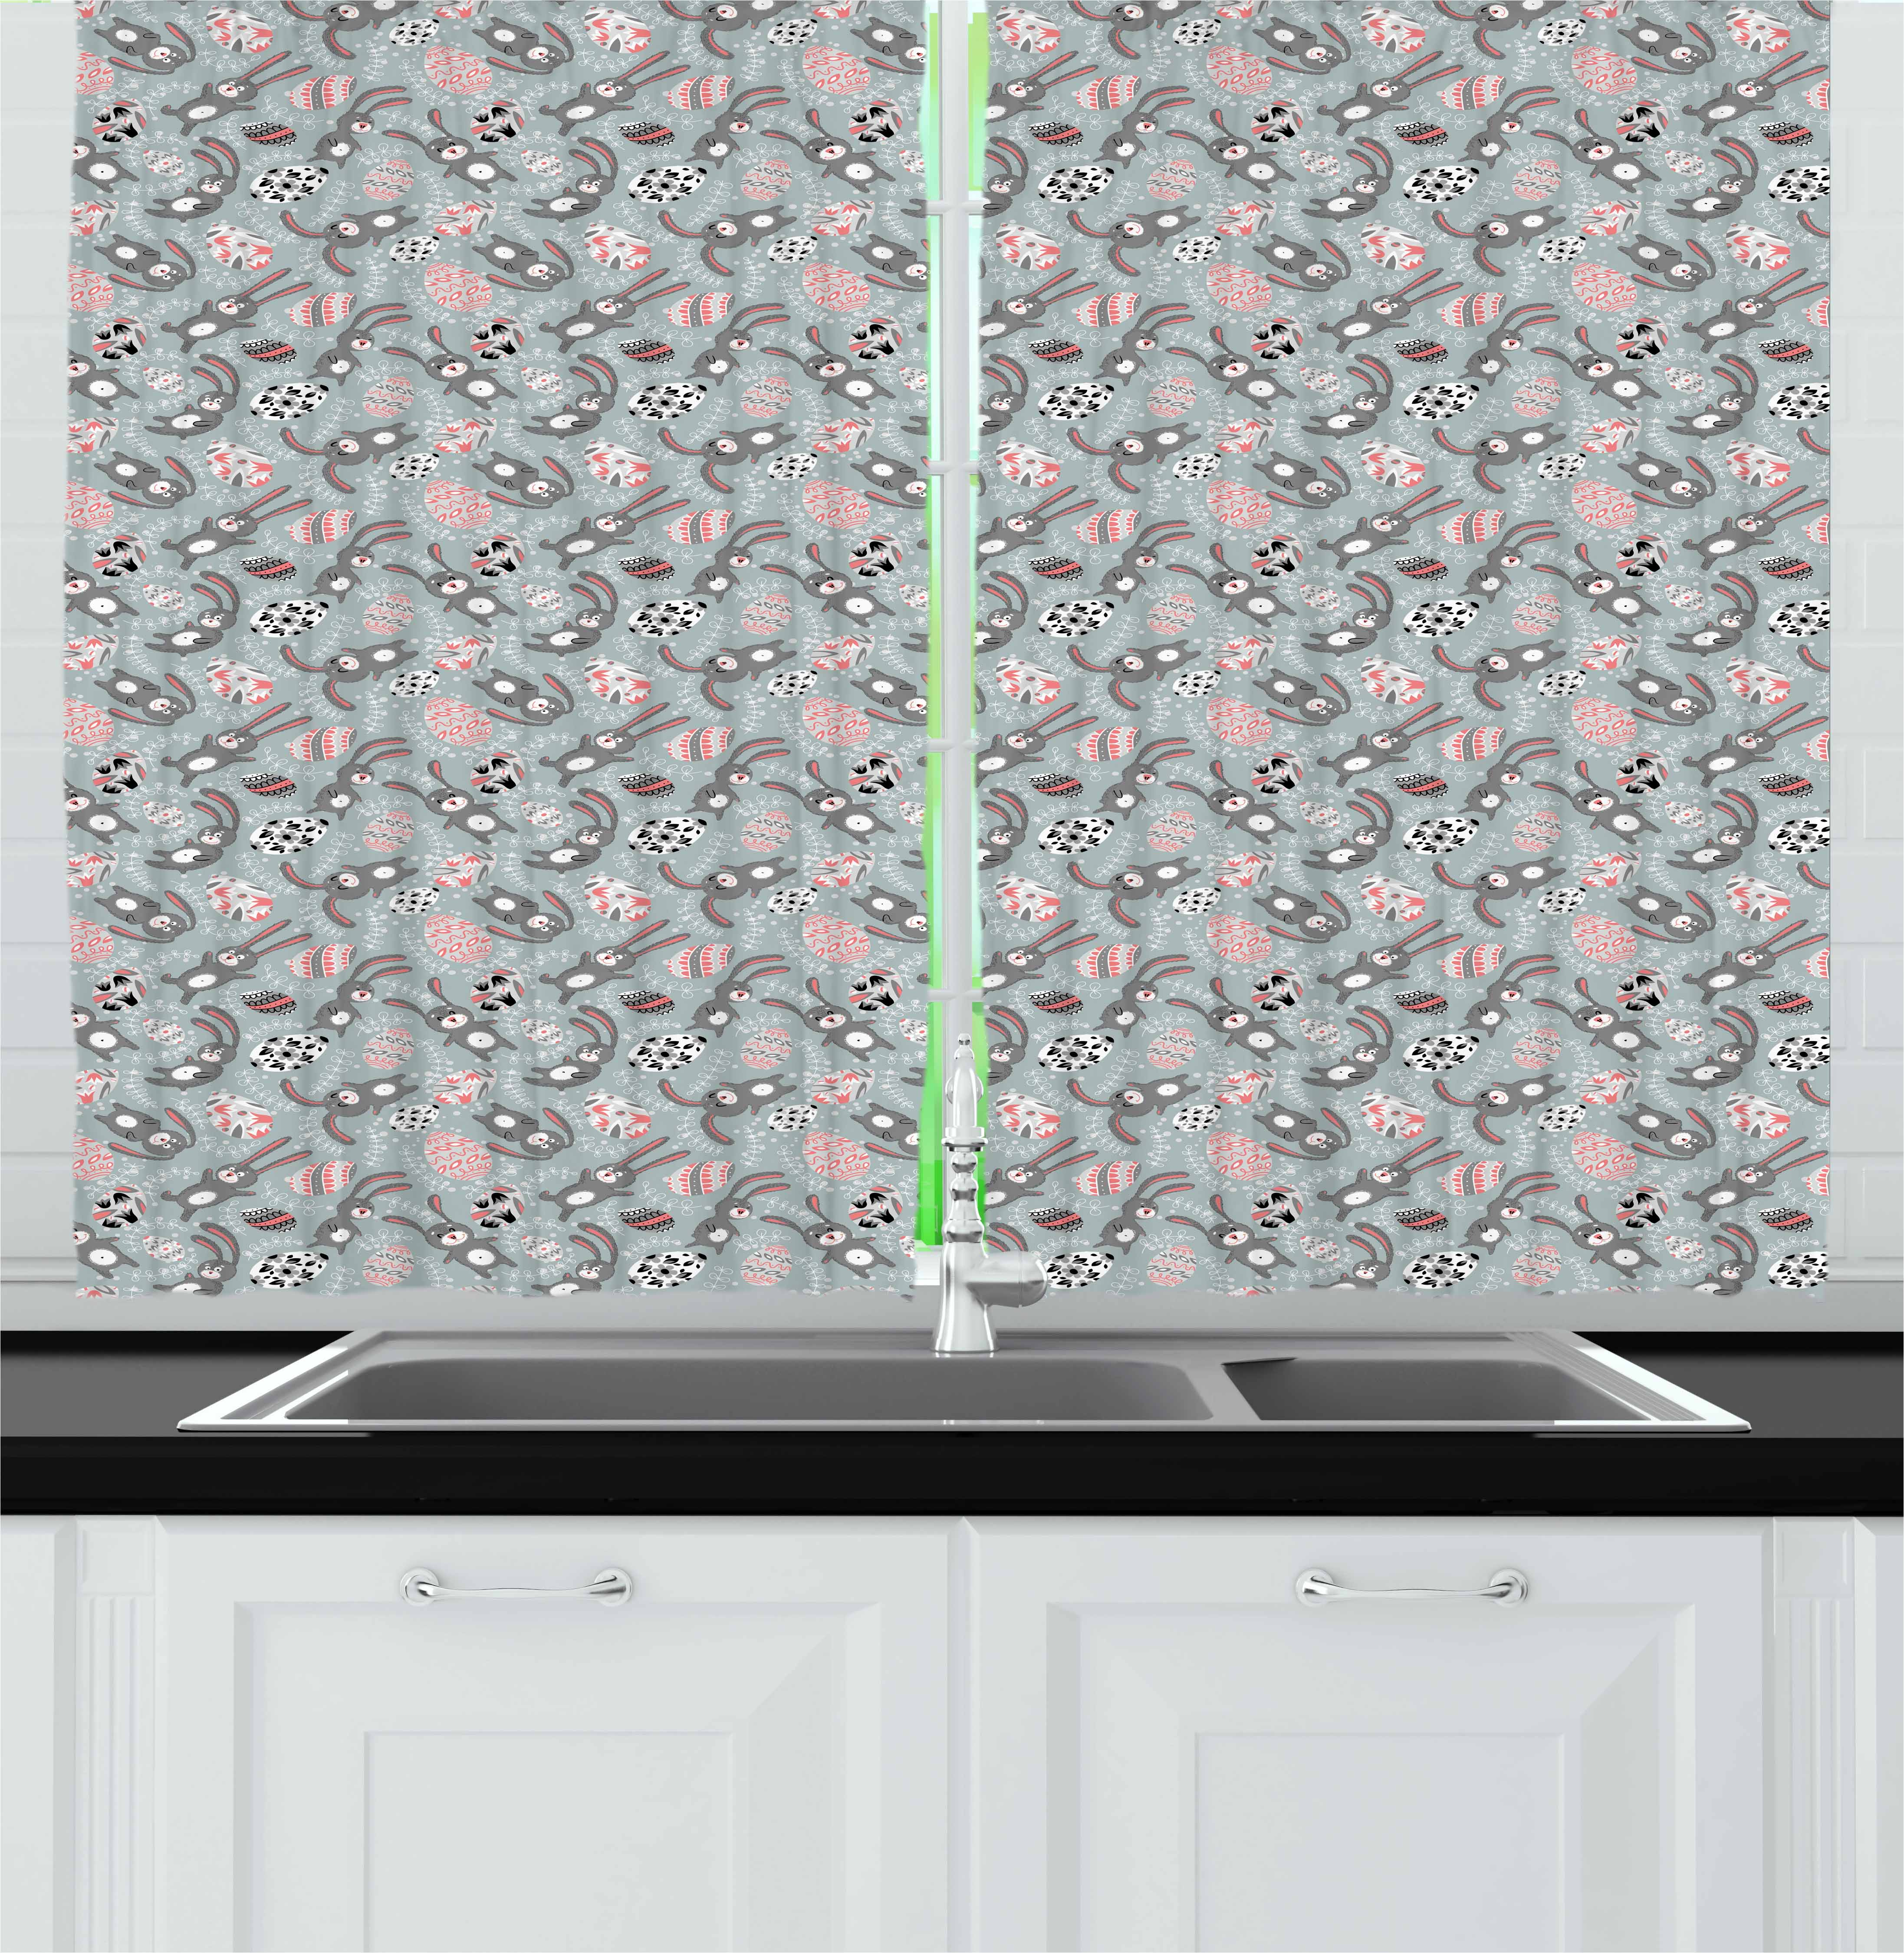 Easter Curtains 2 Panels Set, Kids Toy Bunnies with Funny Expressions Ornate Spring Branches and Eggs, Window Drapes for Living Room Bedroom, 55W X 39L Inches, Bluegrey Coral Black, by Ambesonne